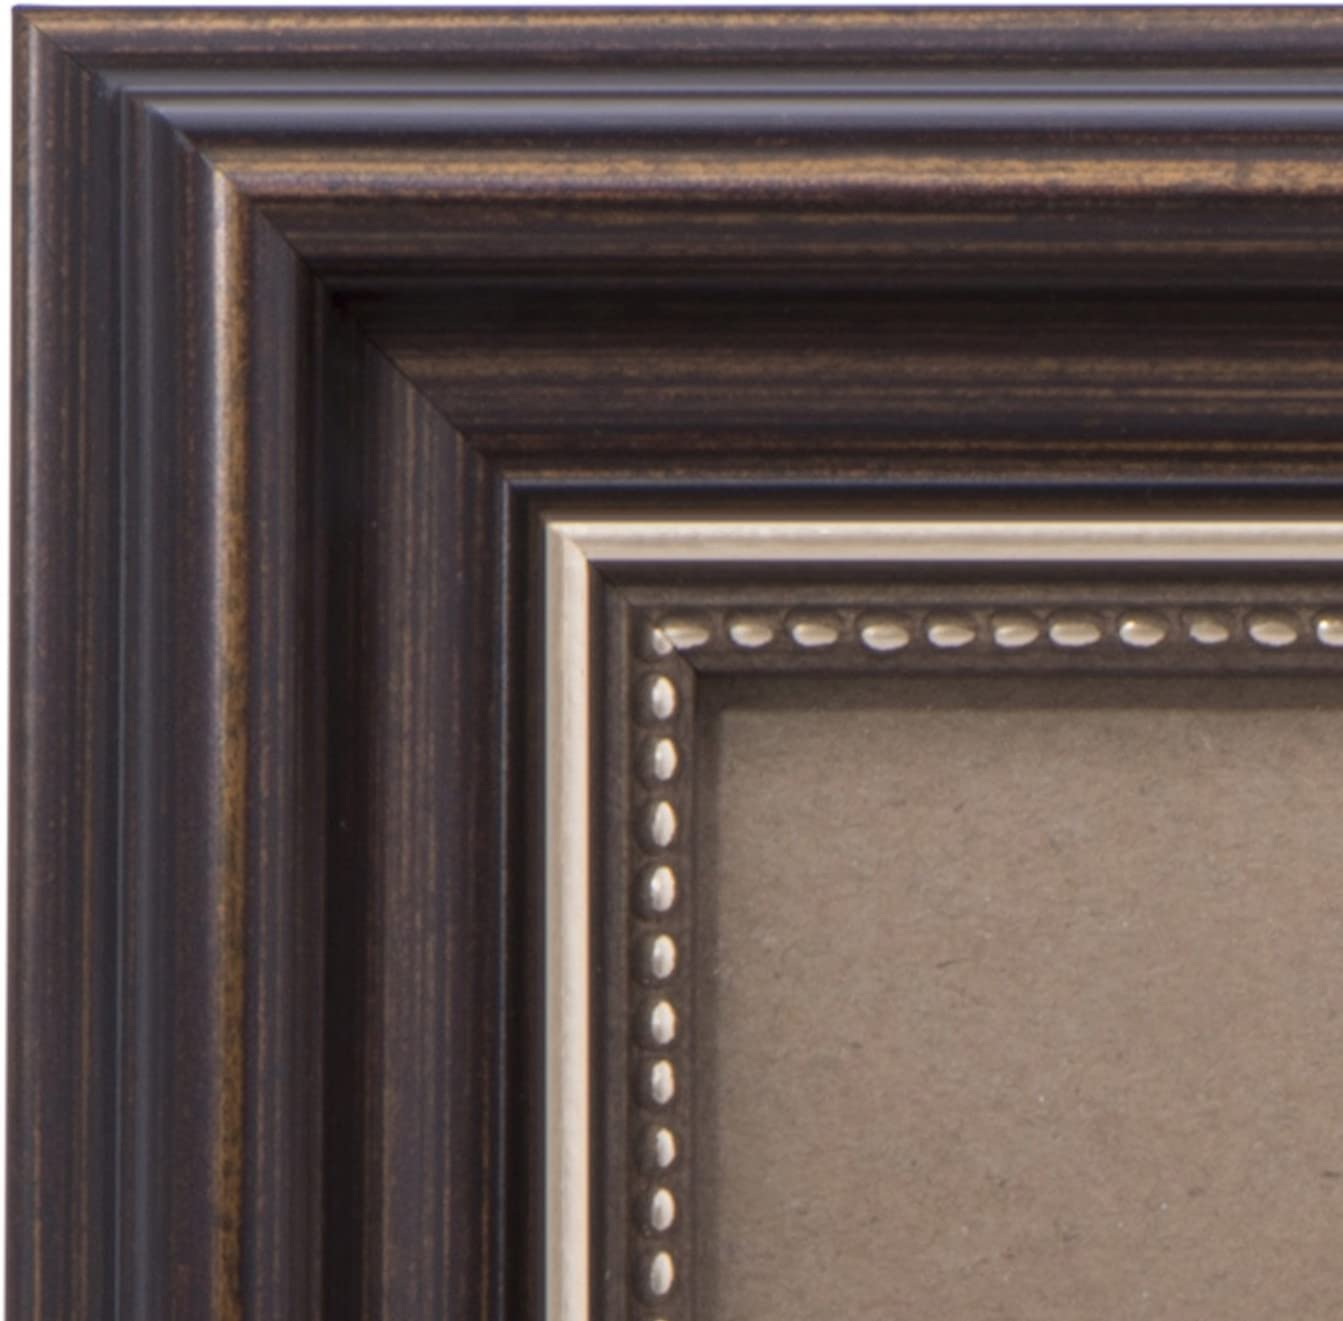 8x10 Picture Frame Antique Brown - Mount Desktop Display, Frames by EcoHome